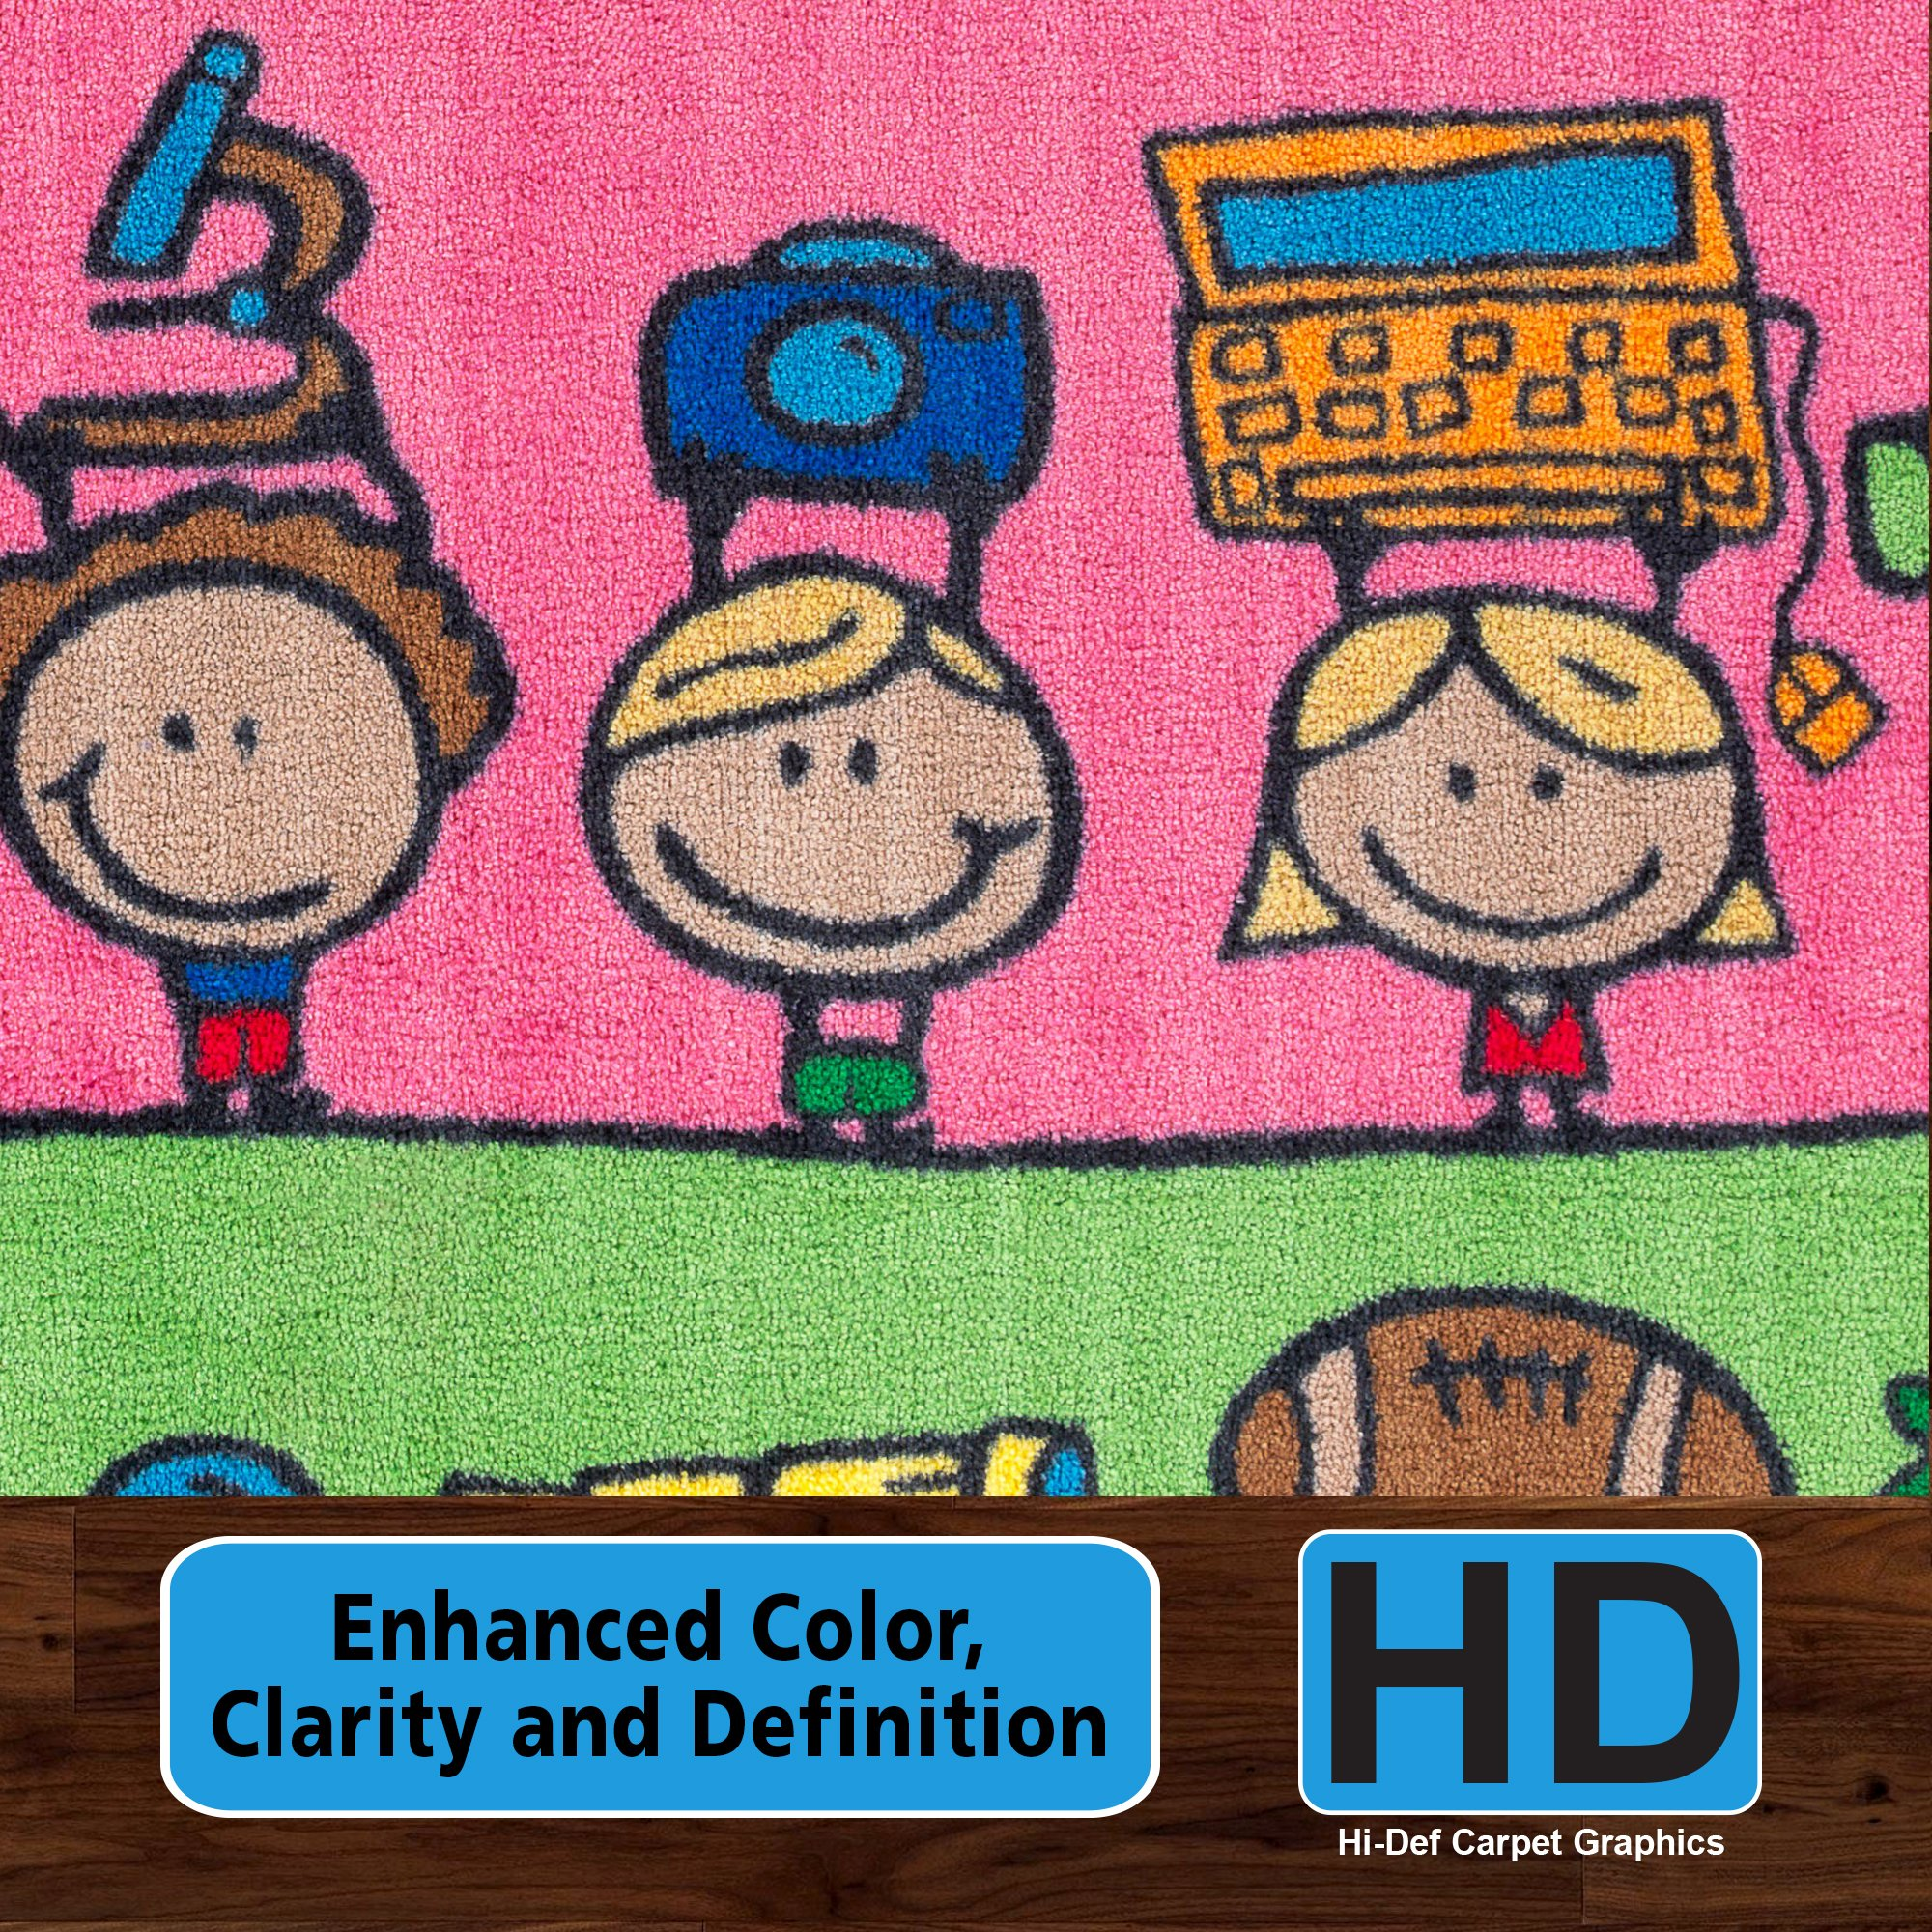 Flagship Carpets CE190-28W Fun at School Rug, Explore Health and Wellness As Well As STEAM Subjects, Children's Classroom Educational Carpet, 5' x 8', 60'' Length, 96'' Width, Multi-Color by Flagship Carpets (Image #3)